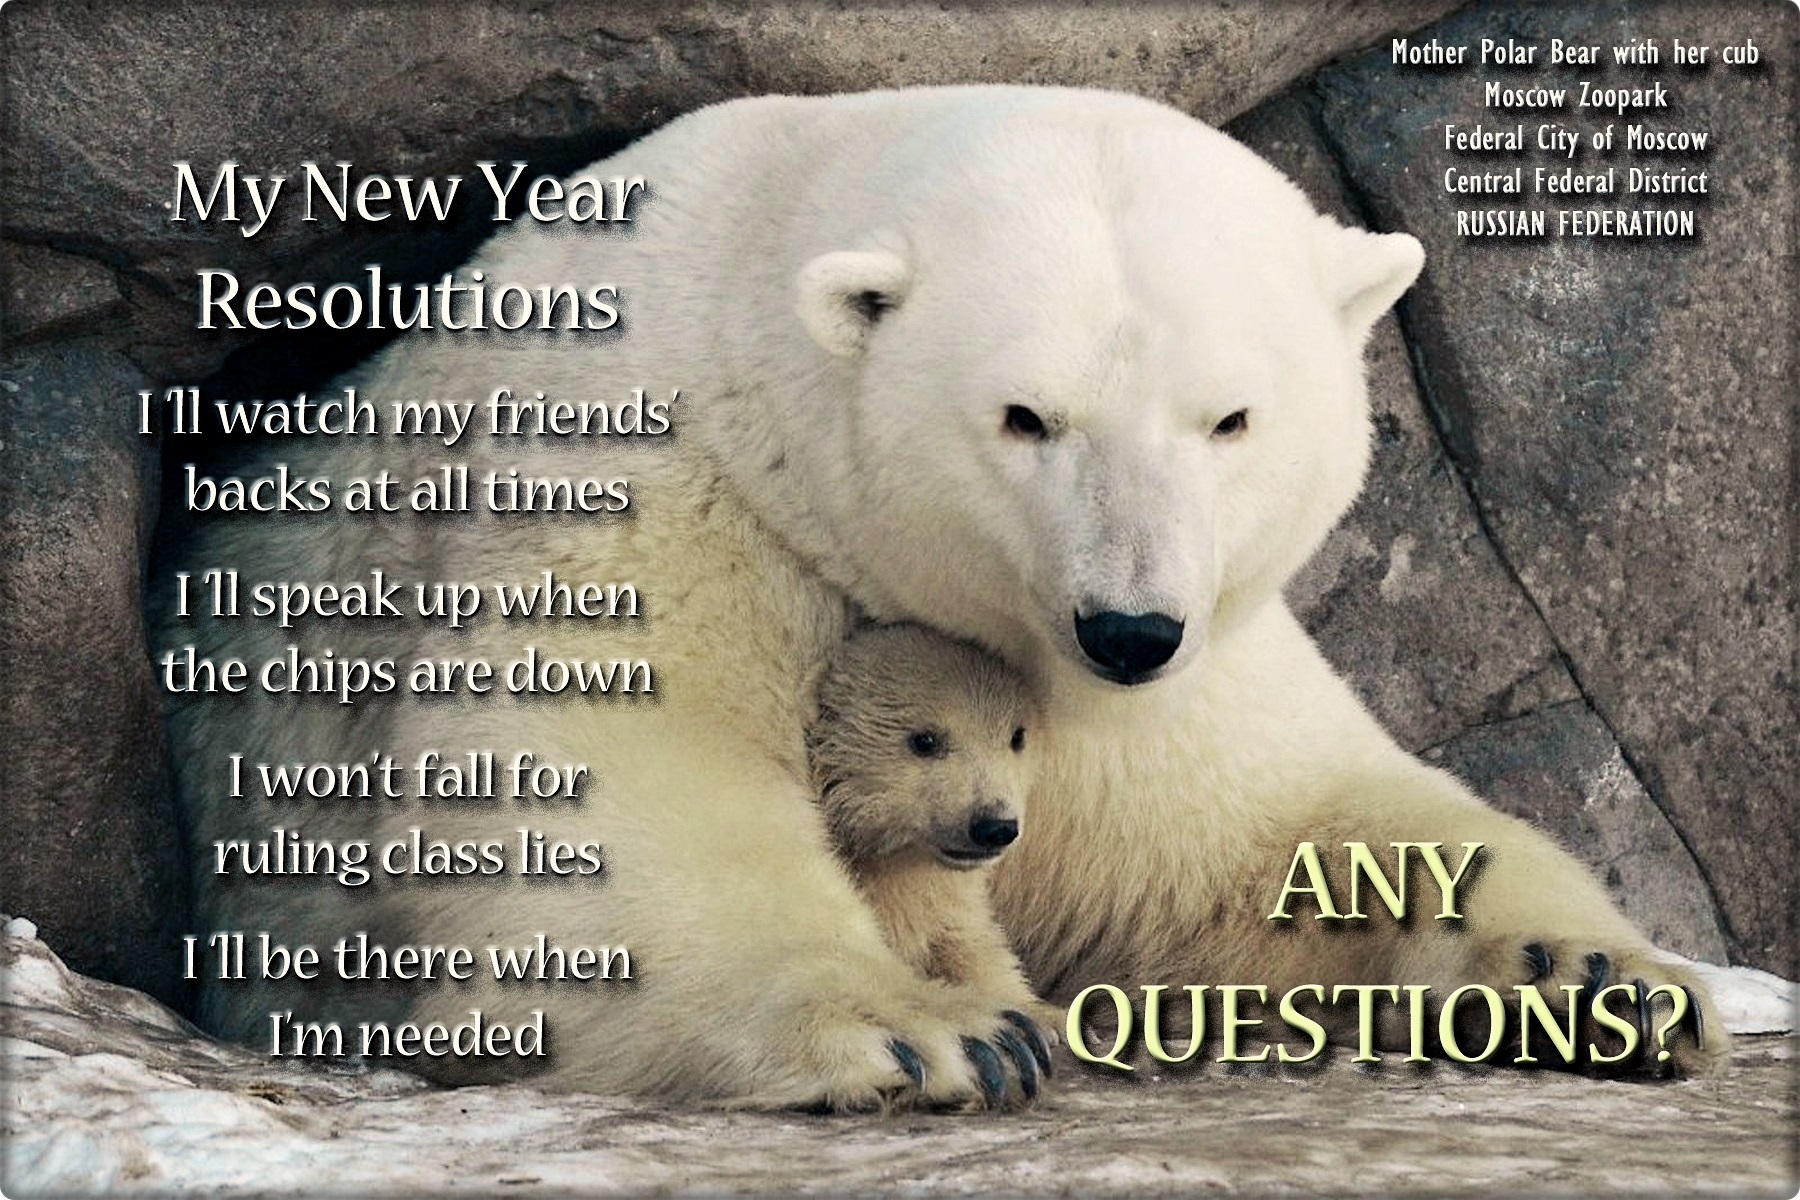 00 polar bear new year resolutions 020116